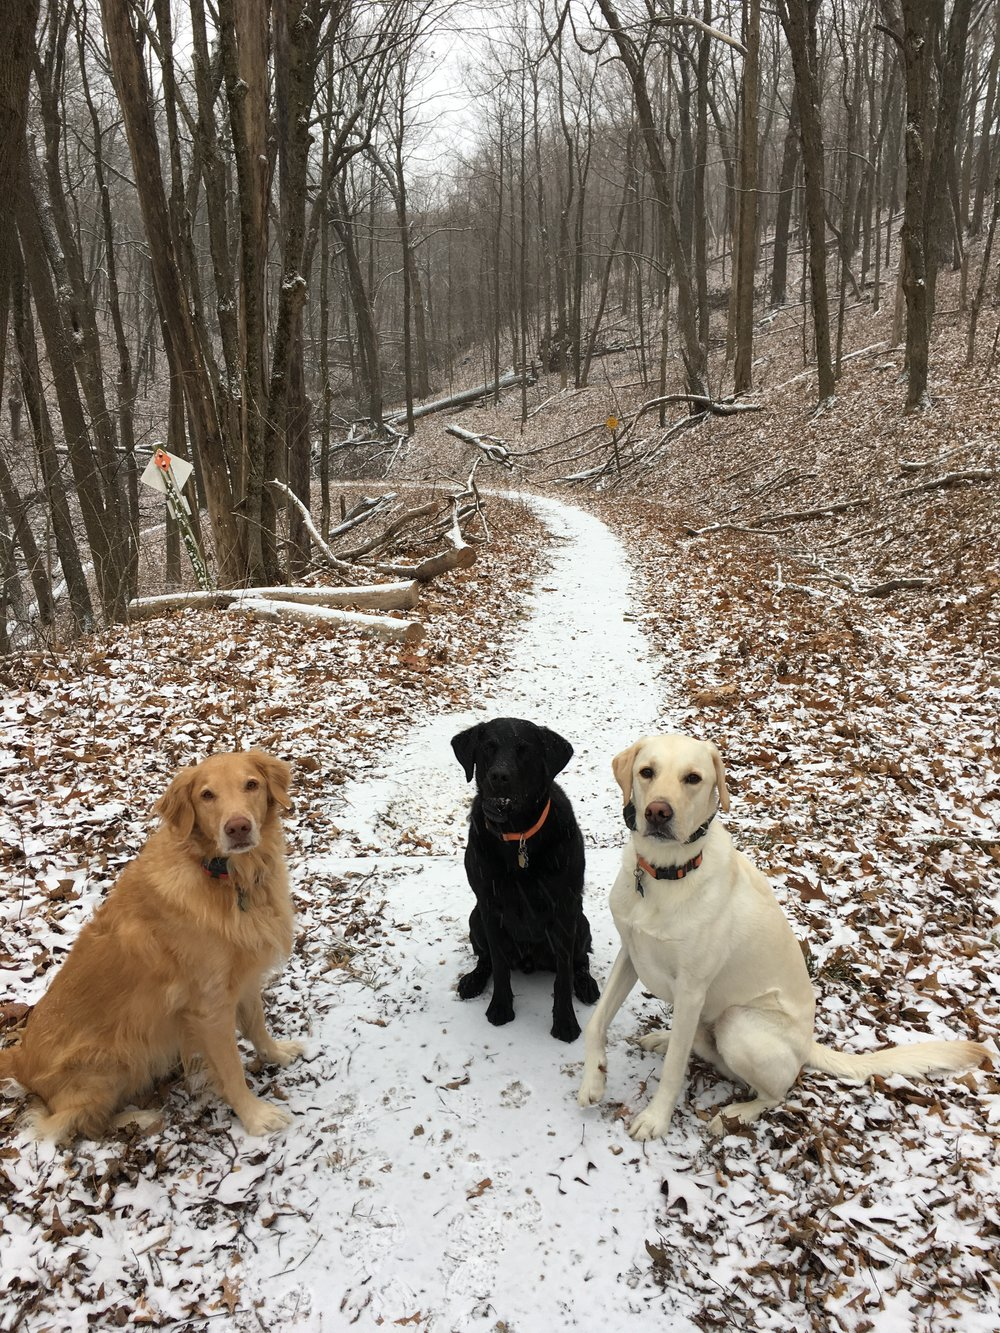 Wisconsin State Park Pass - We spend 50% of our life eating and 50% walking or hiking with the dogs. A Wisconsin State Park pass is only $28 and it's the perfect gift for anyone who likes to get outdoors or has a dog.